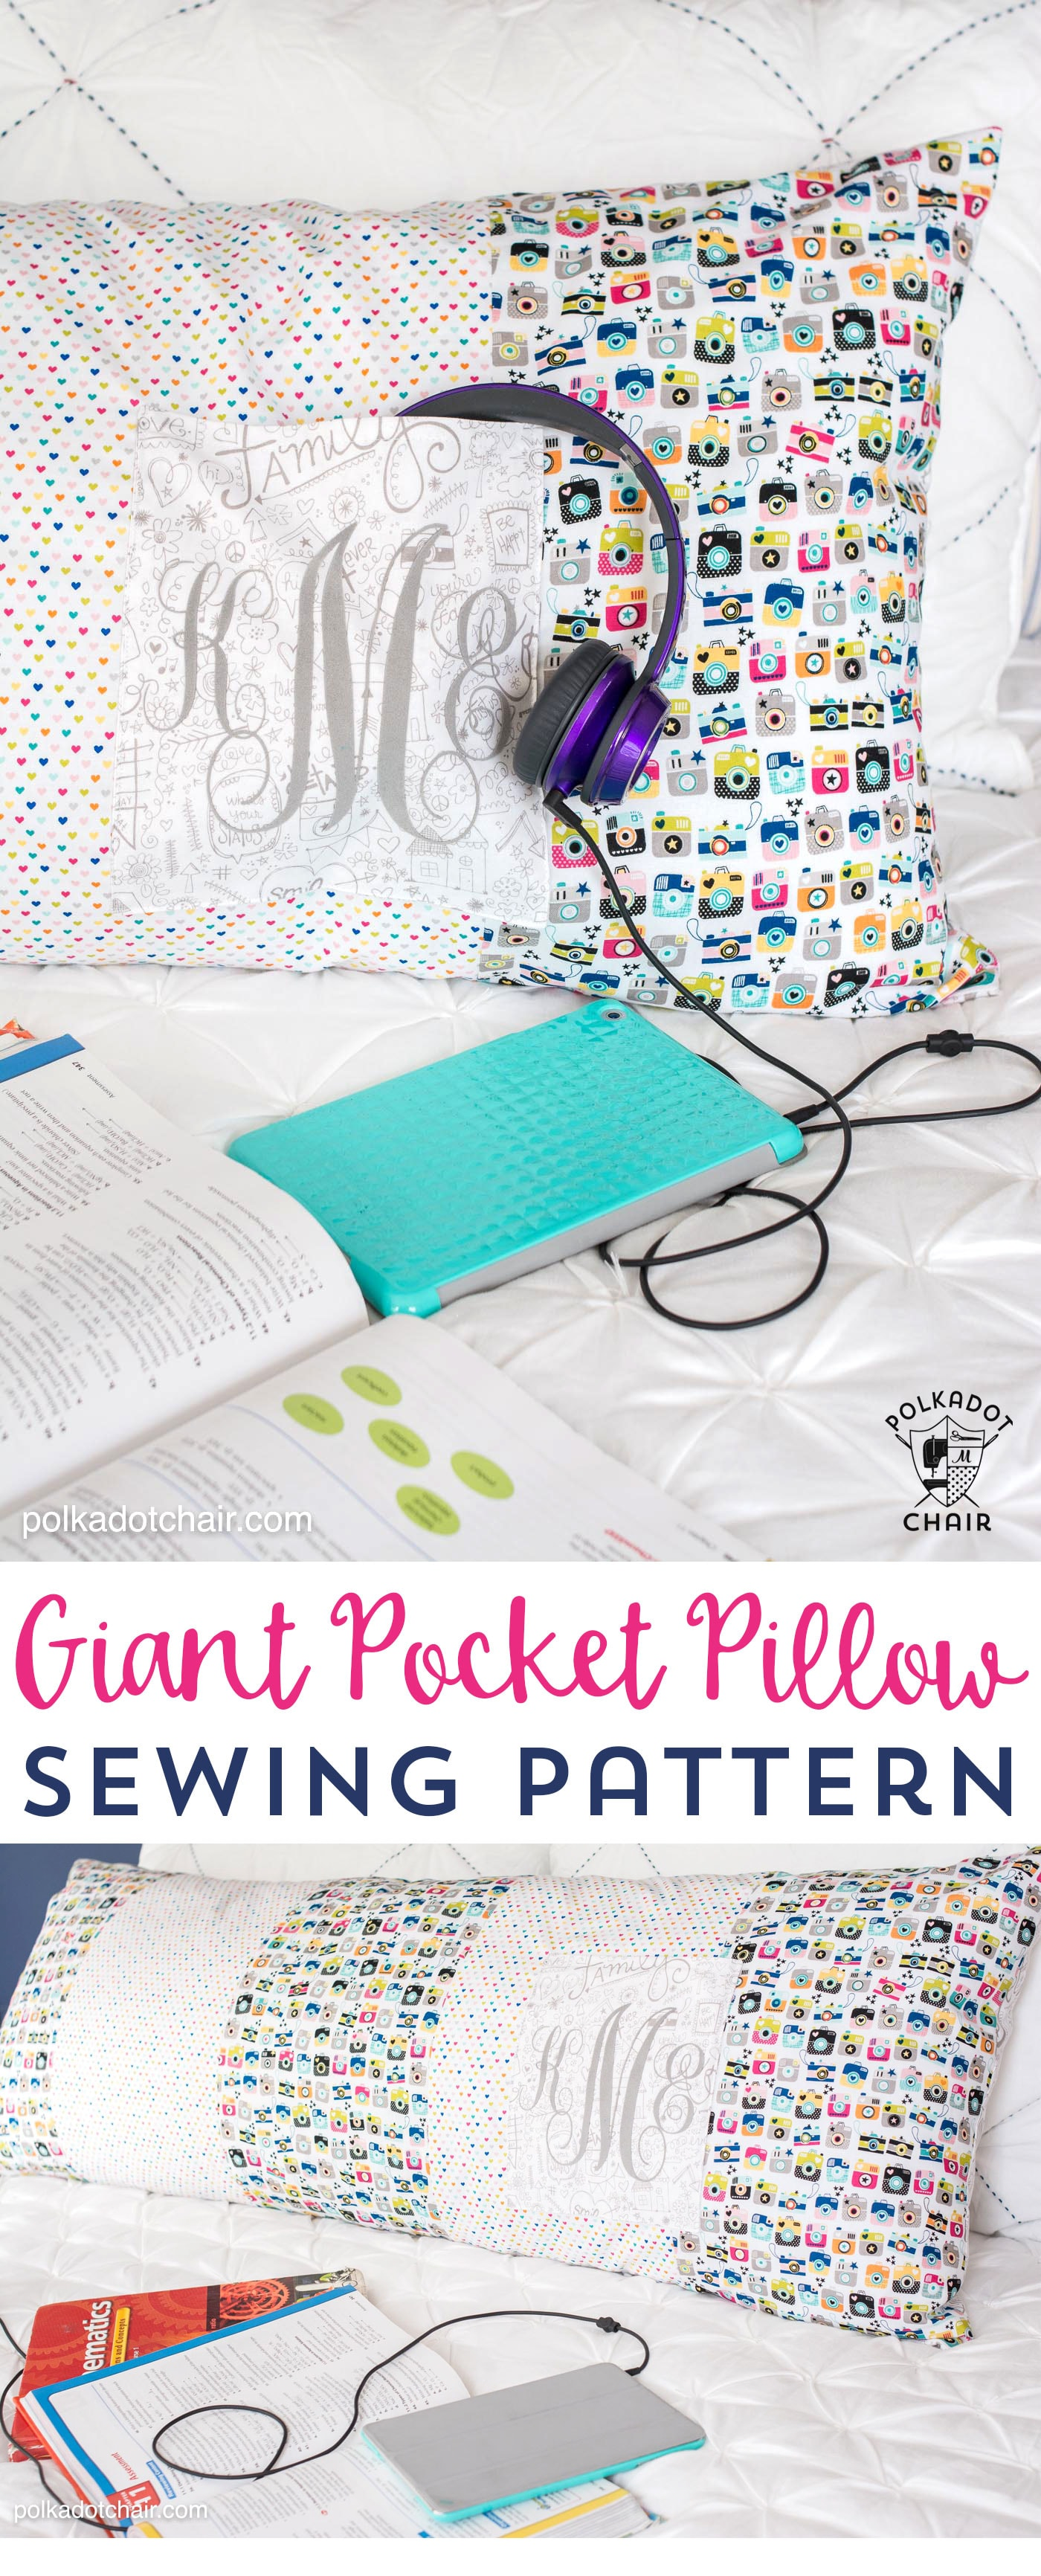 Giant Pillow Chair Giant Body Pillow Sewing Pattern With Pocket